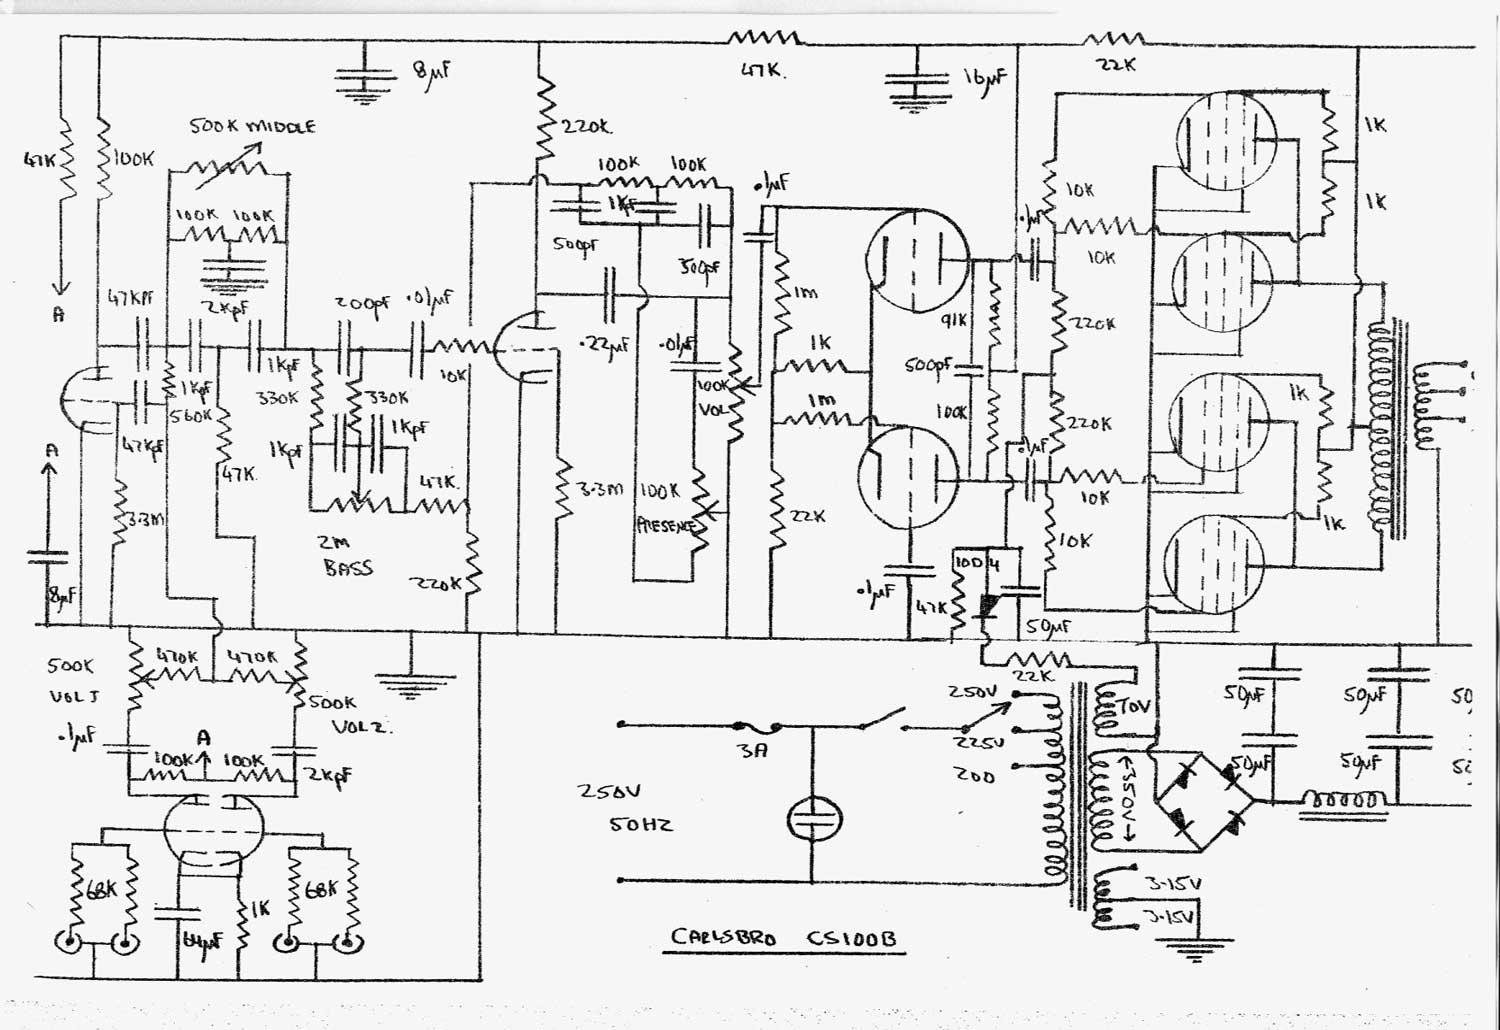 Chrysler 300 Wiring Schematics Chrysler Sebring 2.7 Engine